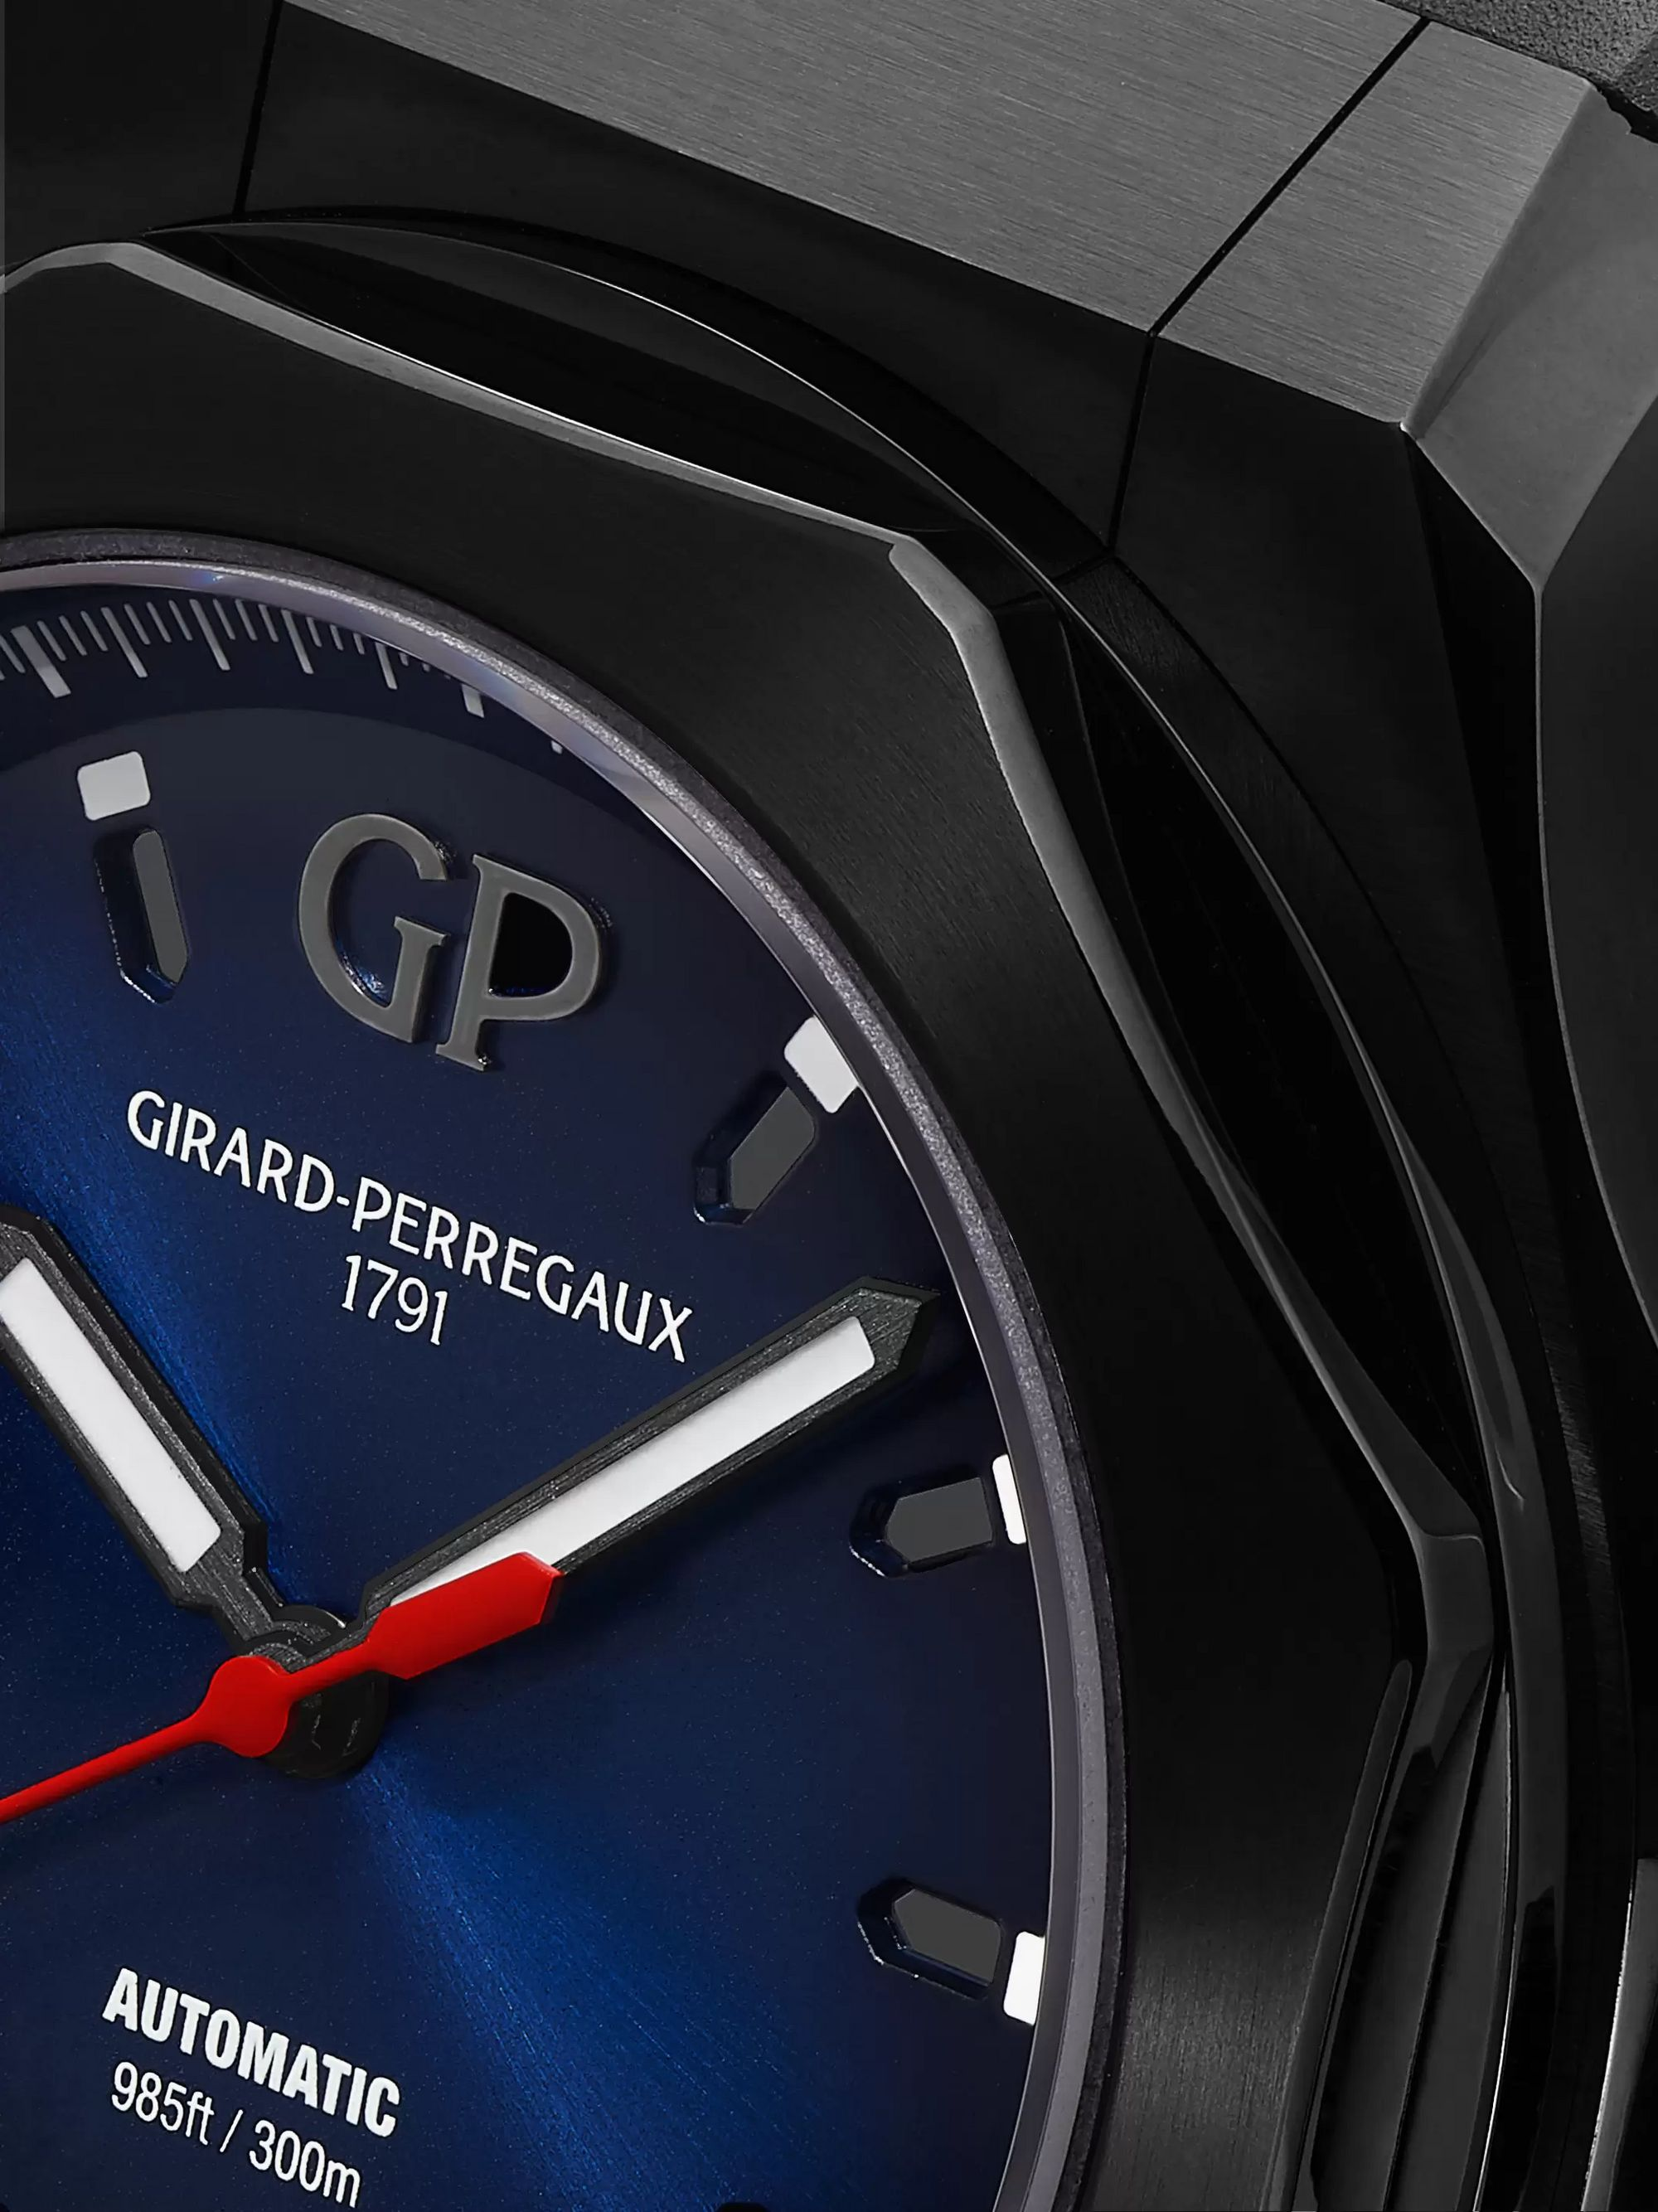 Girard-Perregaux Laureato Absolute Automatic 44mm Titanium and Rubber Watch, Ref. No. 81070-21-491-FH6A